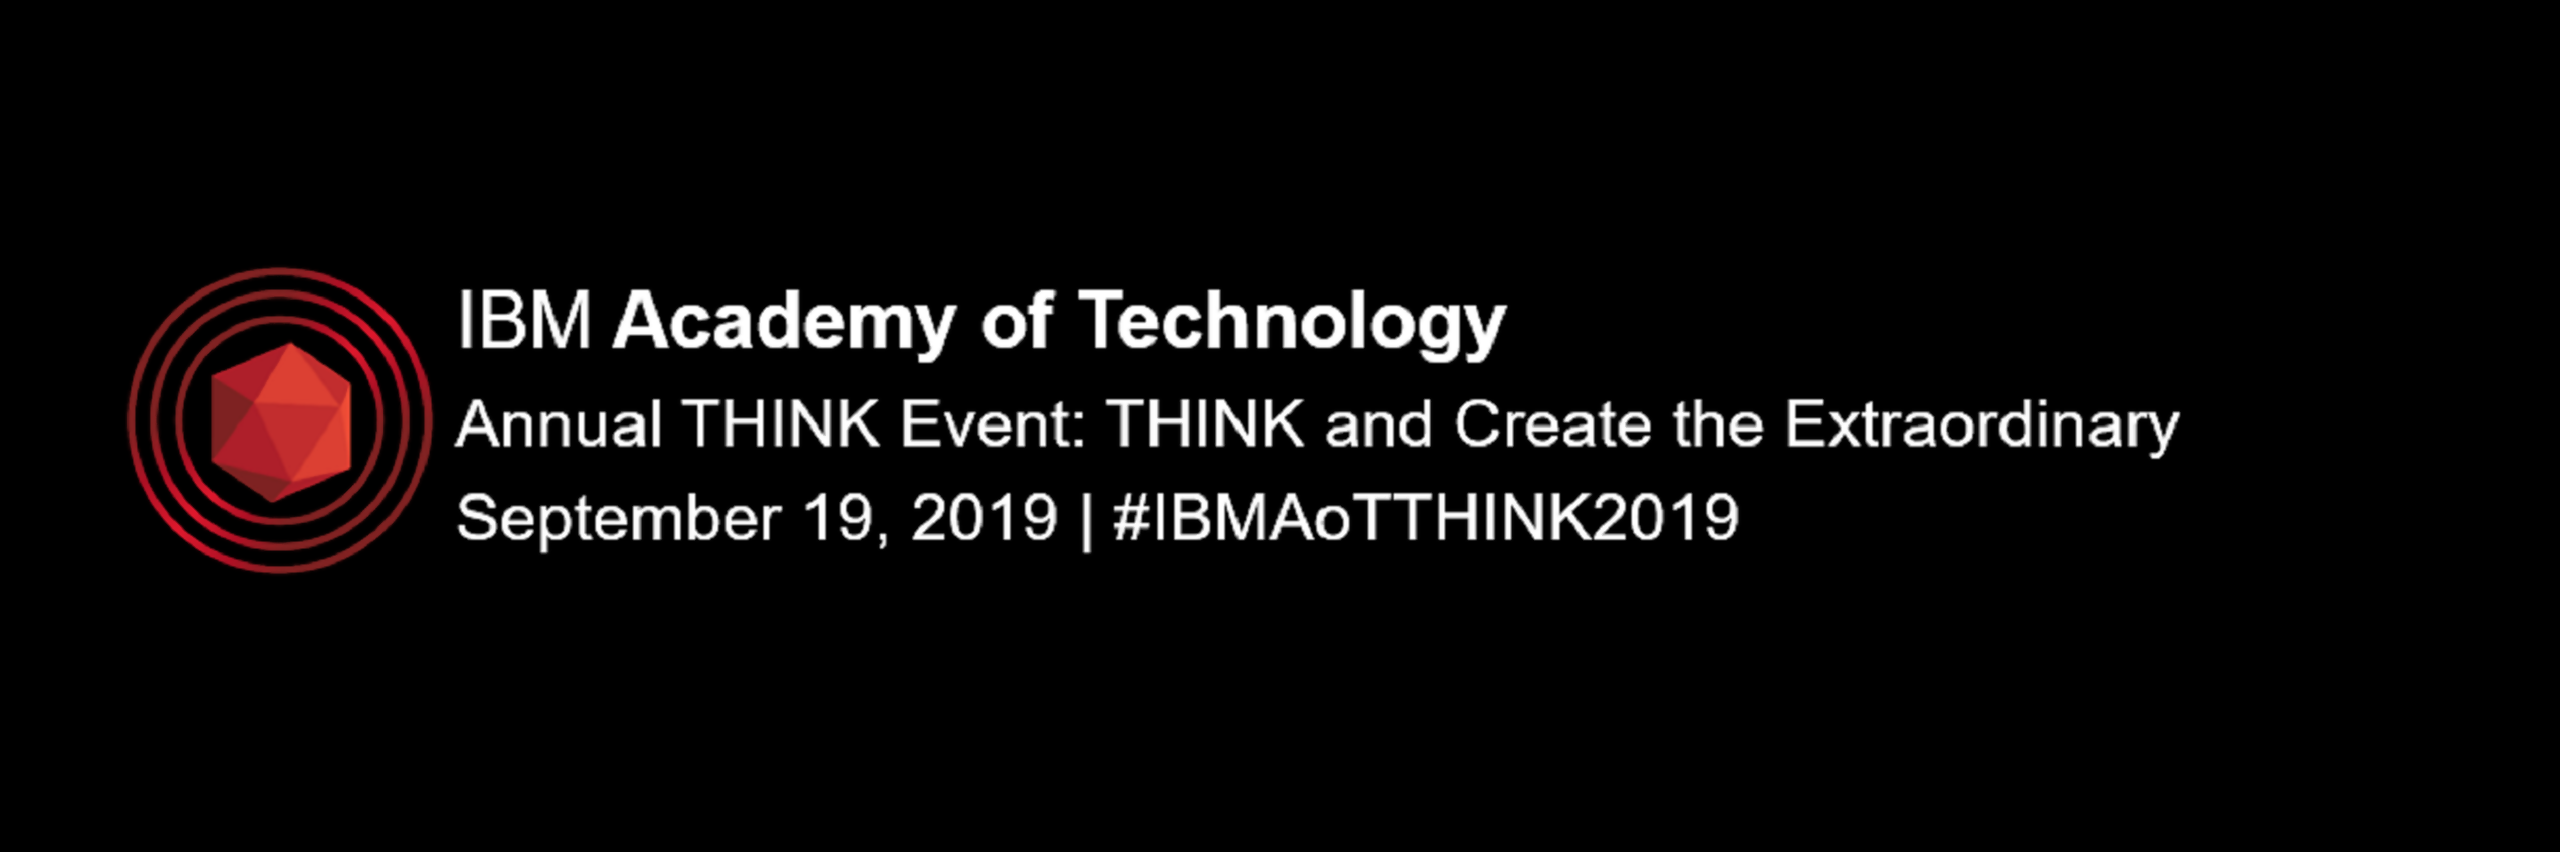 IBM AoT Annual THINK Event